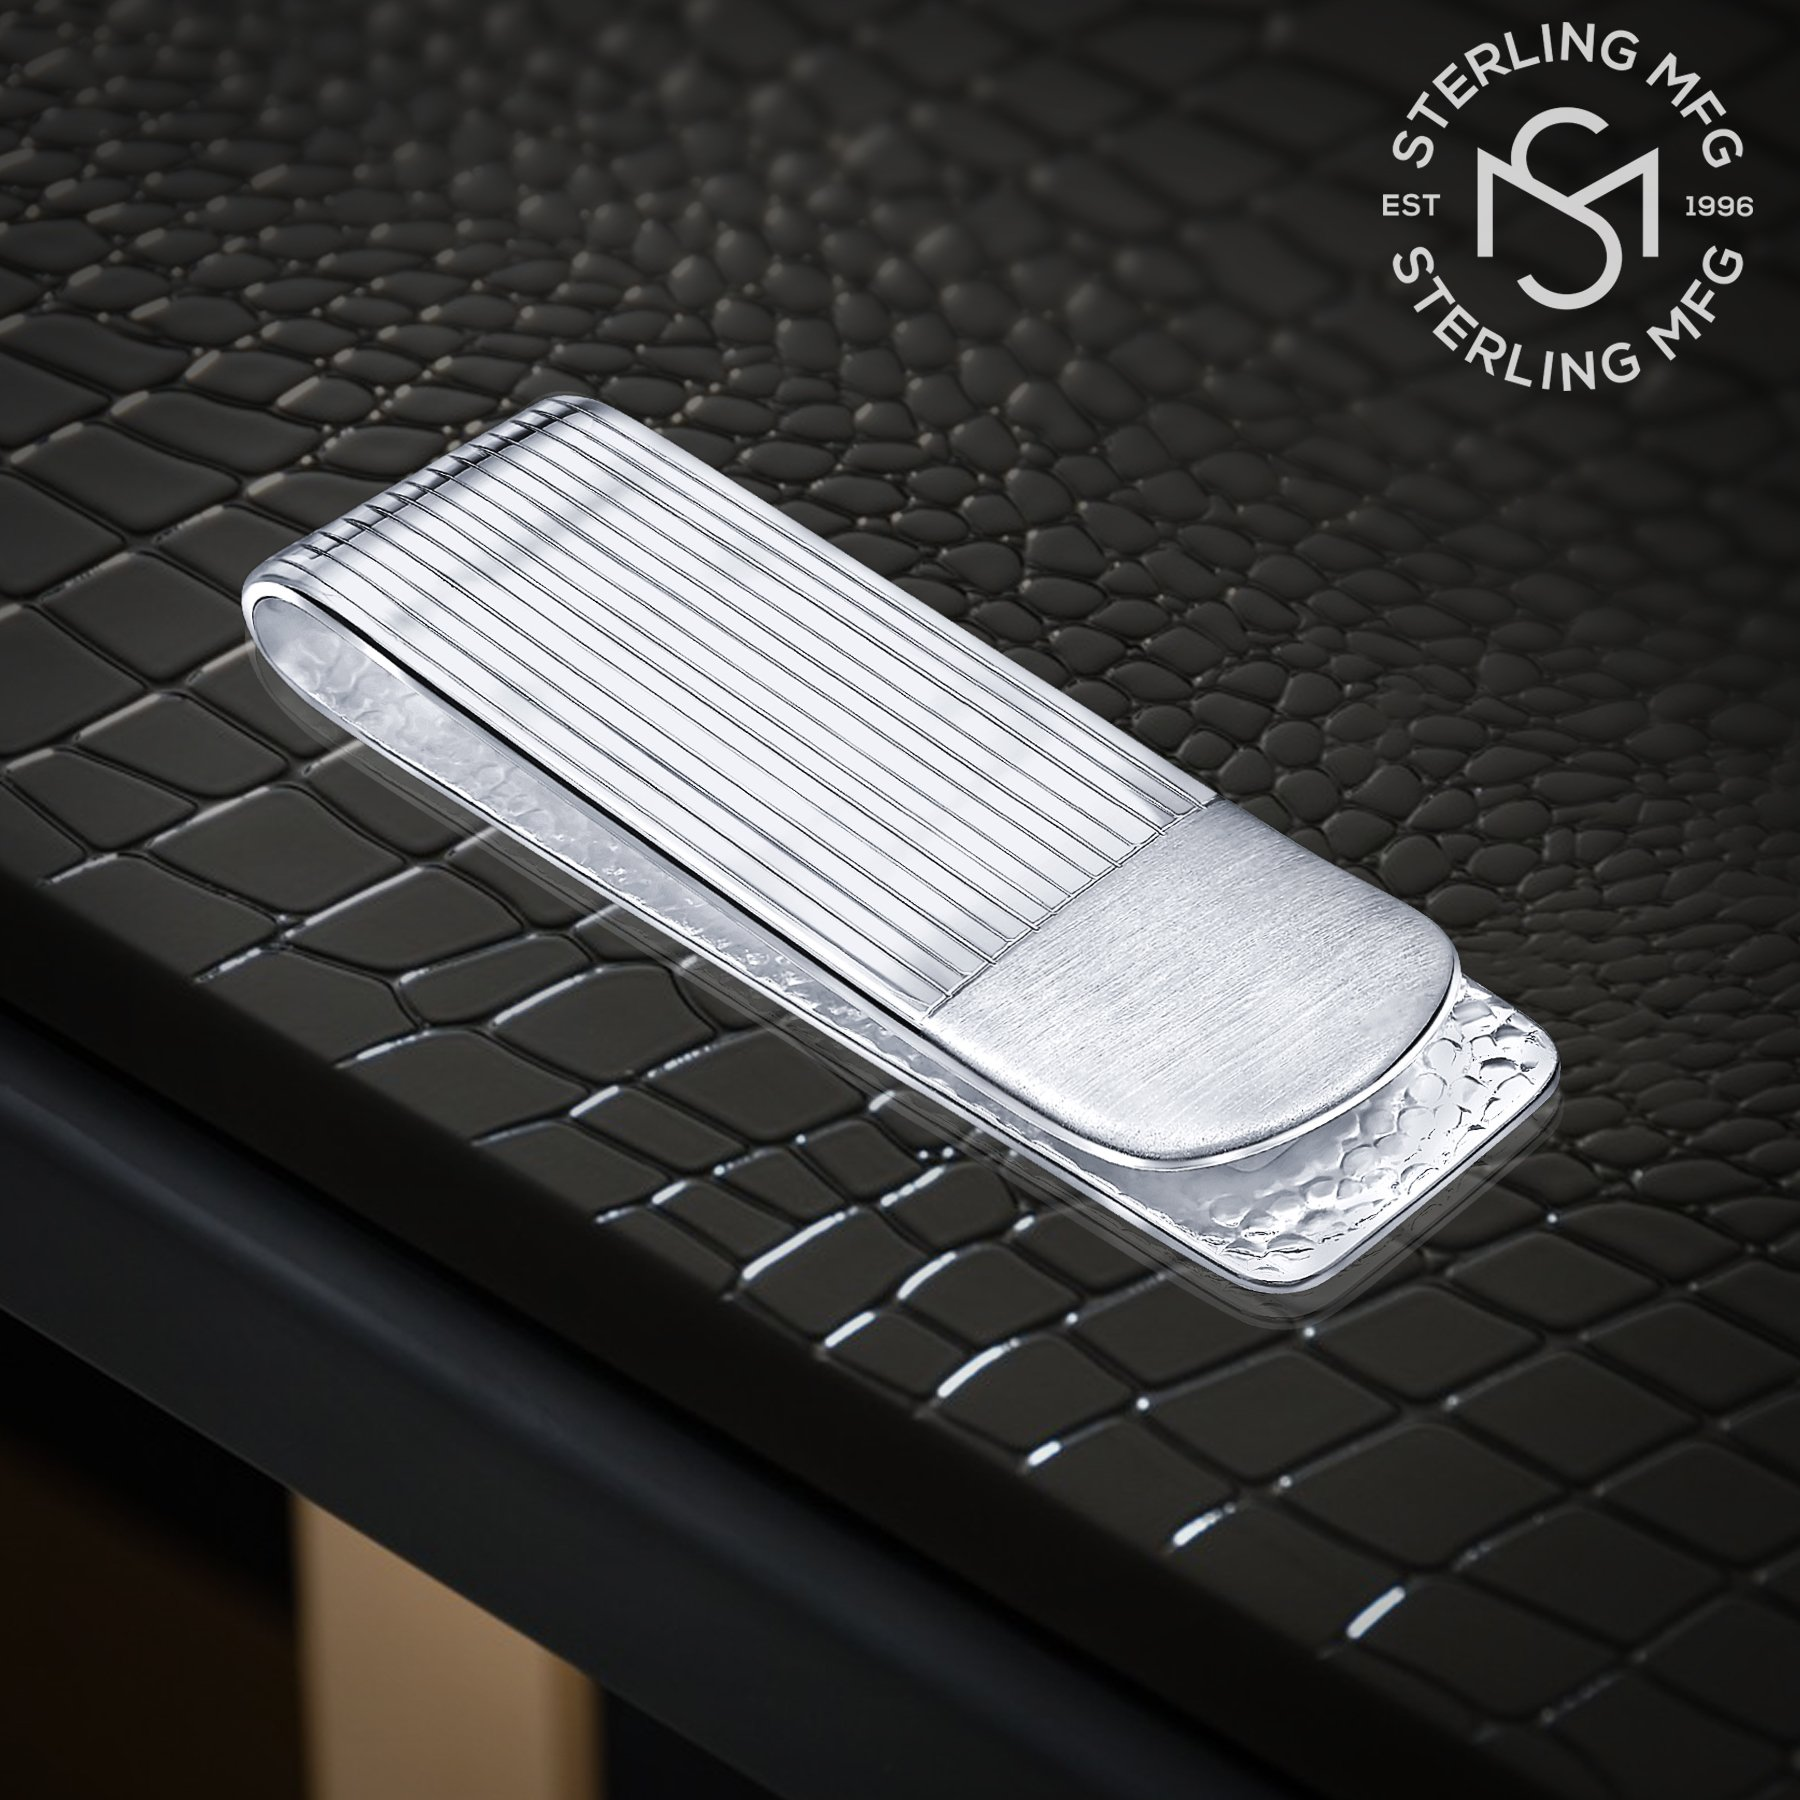 Sterling Silver .925 Money Clip Striped Design with Satin Finish Accent, Pebbled Underside. Designed and Made In Italy. By Sterling Manufacturers by Sterling Manufacturers (Image #2)